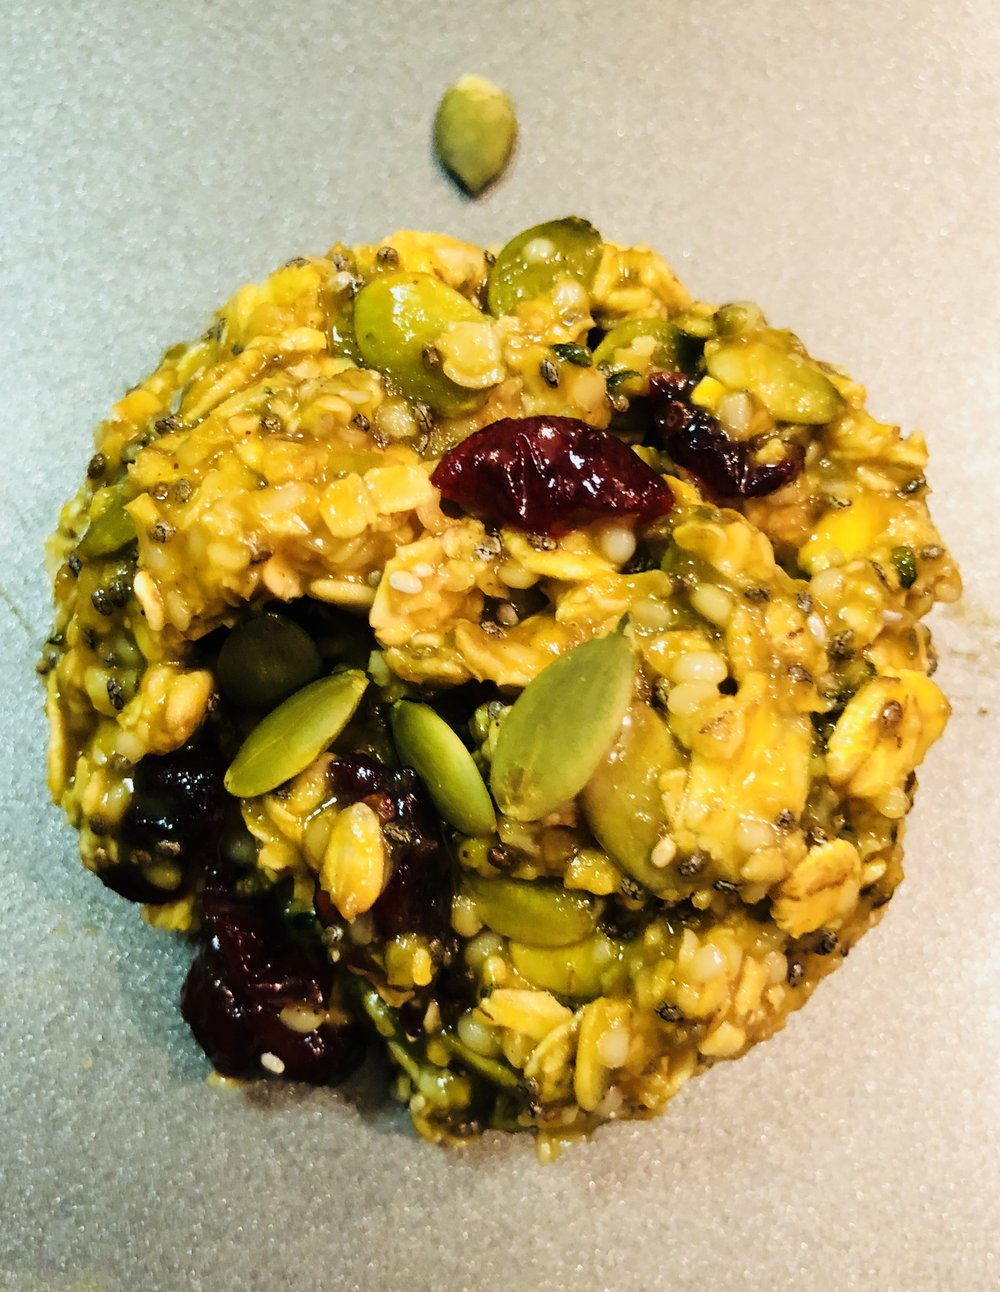 These breakfast cookies are a quick and extremely nutritious snack to make and keep on standby for those,